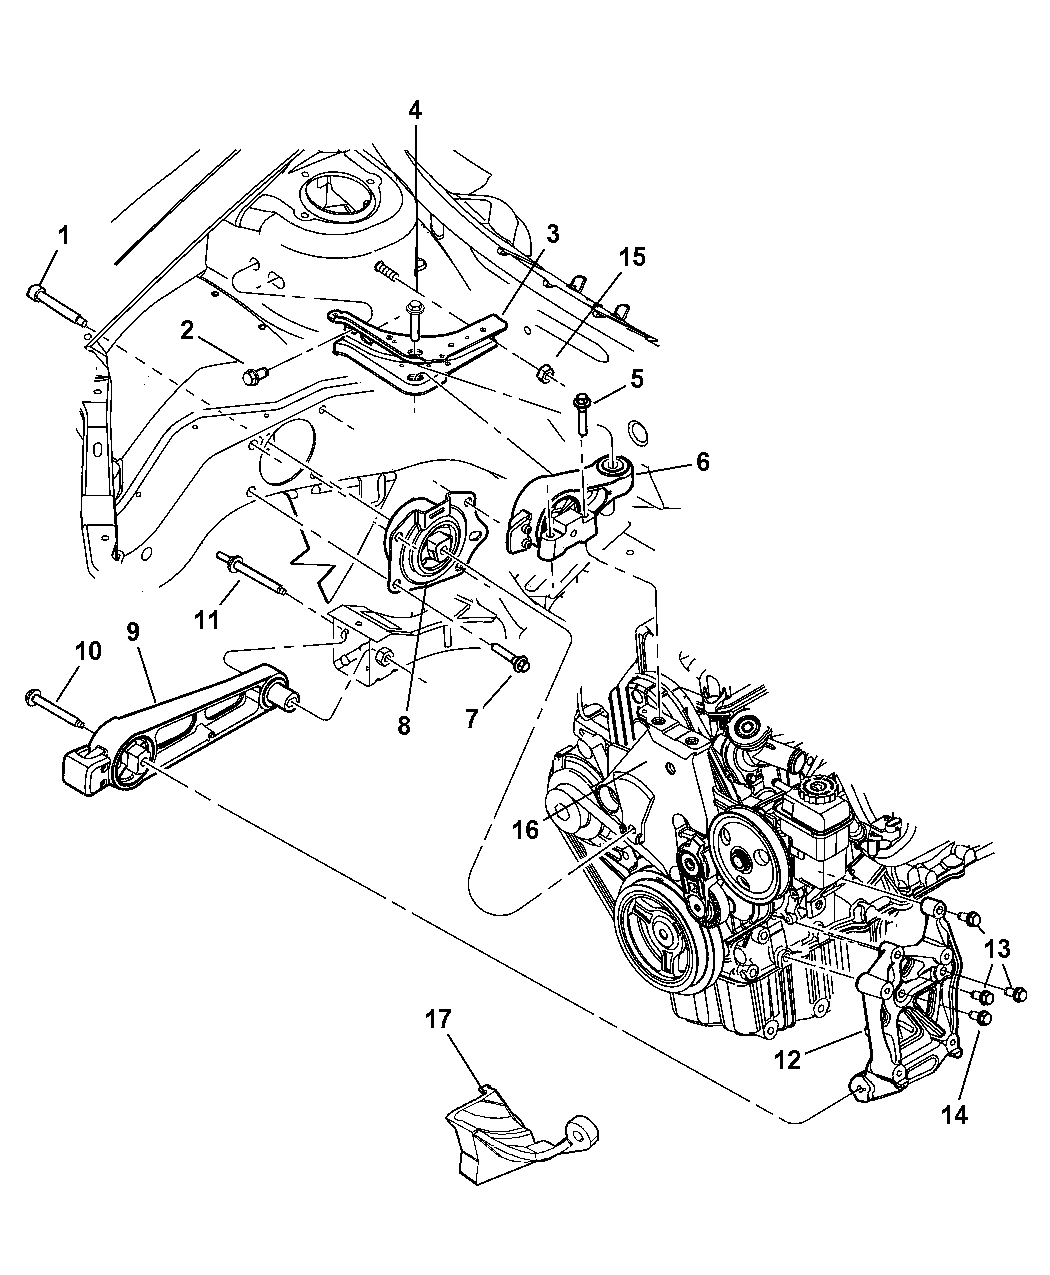 2004 Dodge Neon Engine Mount Diagram